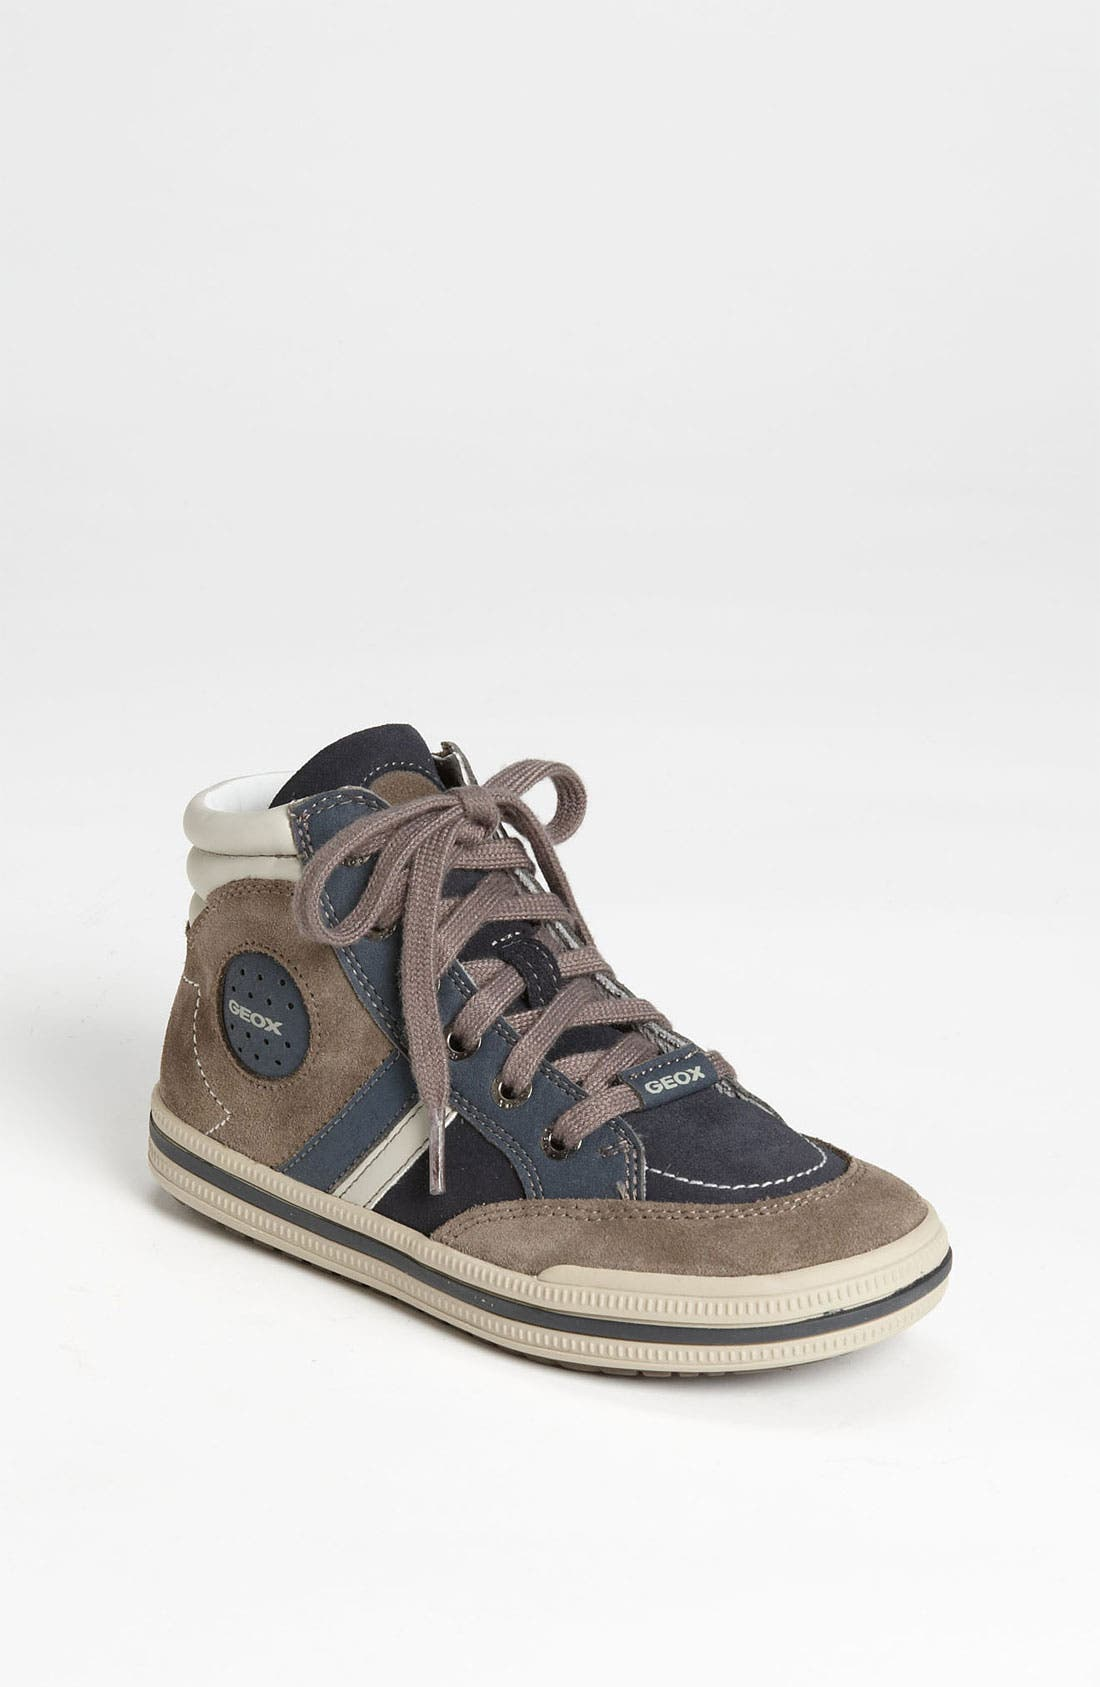 Alternate Image 1 Selected - Geox High Top Sneaker (Toddler, Little Kid & Big Kid)